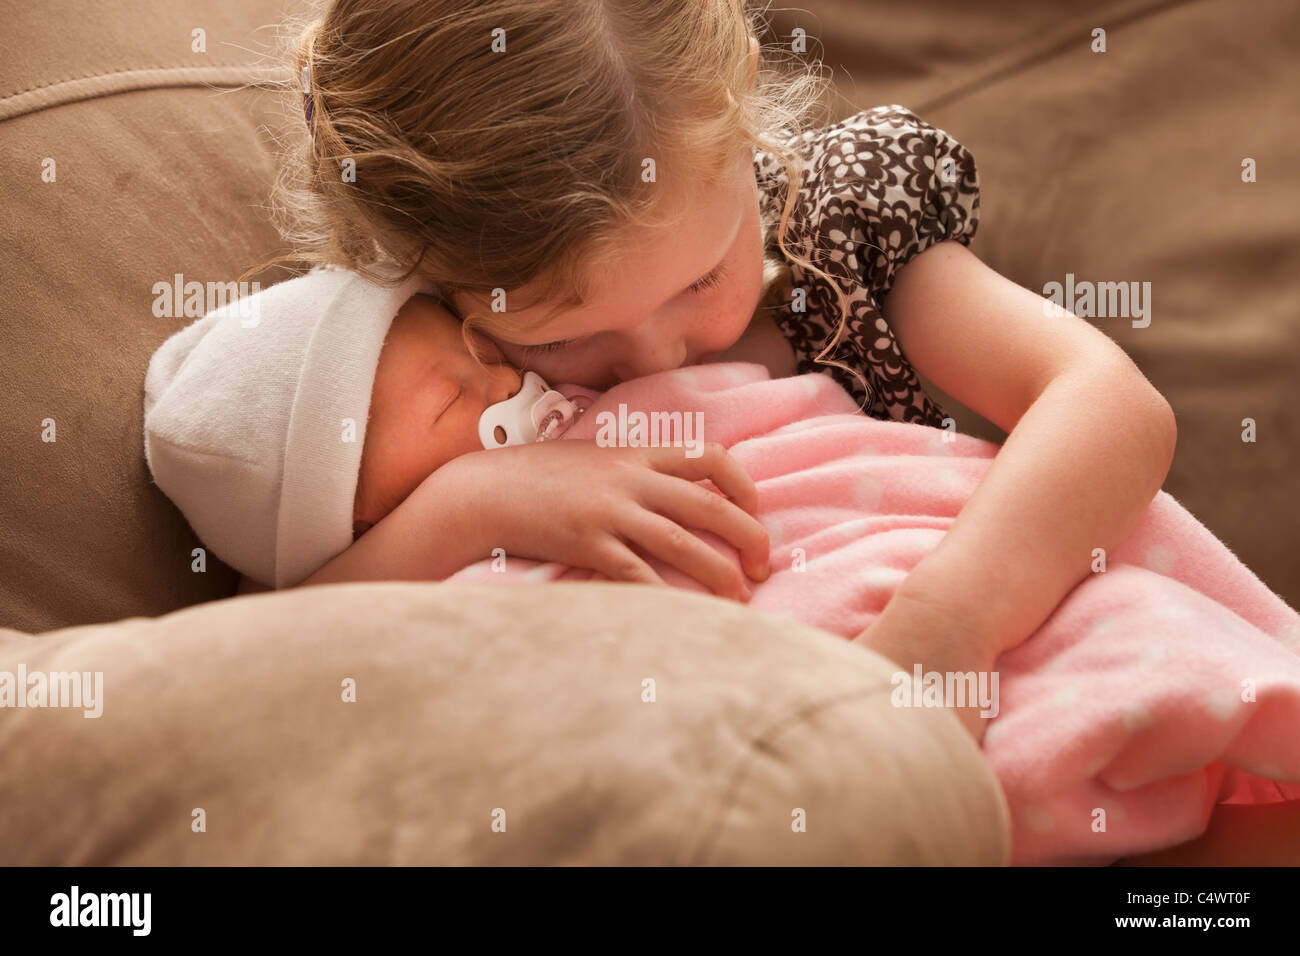 USA, Utah, Léhi, Girl (2-3) embracing baby sister sur canapé Photo Stock